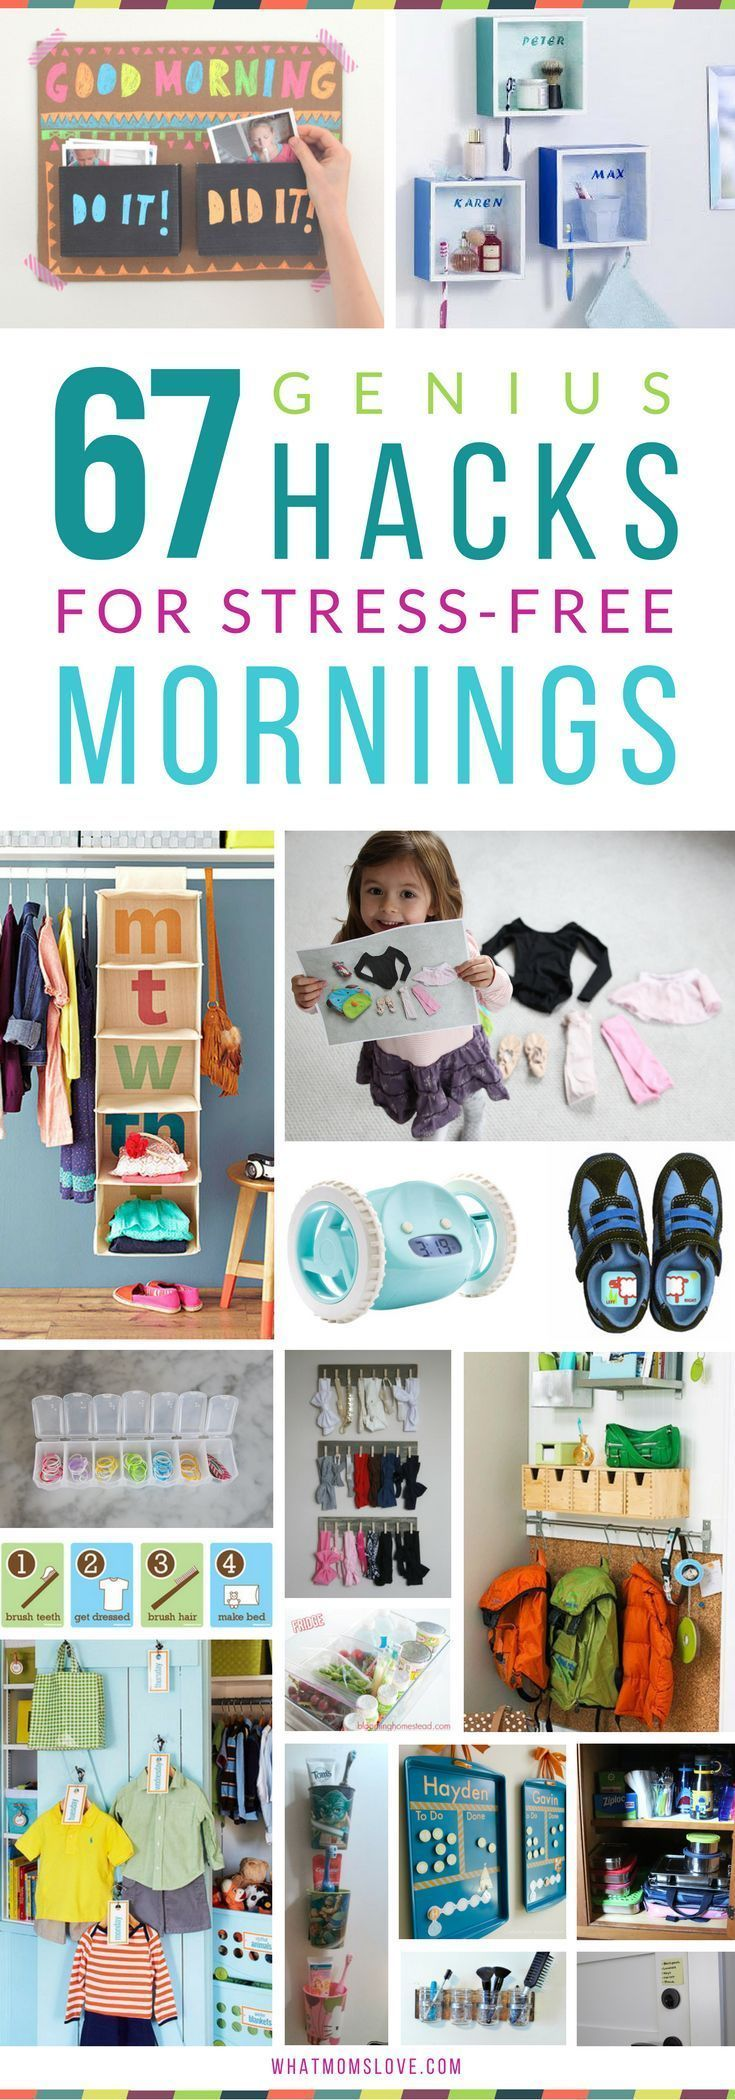 Hacks, Tips and Tricks for Stress-Free Mornings with Kids | Organization ideas for back-to-school. including morning routine checklists, clothes organization, command centers and backpack nooks, bathroom hacks, and more! Get all the inspiration at http://